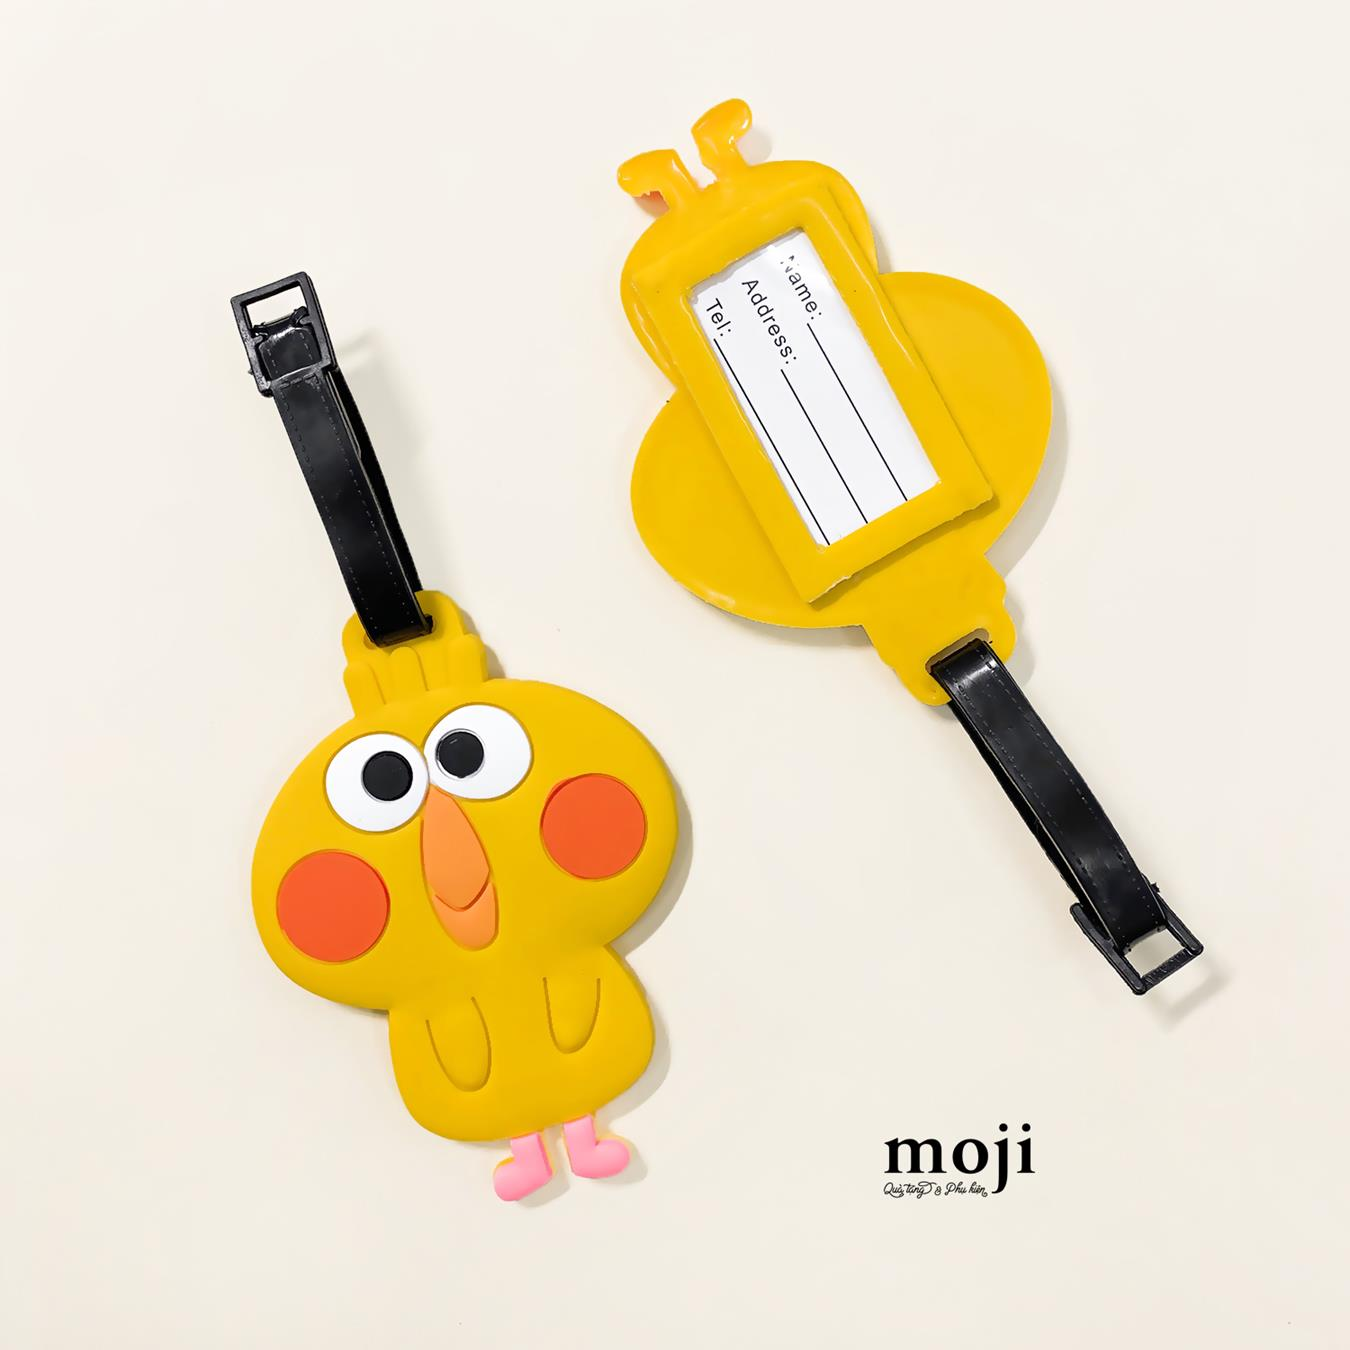 https://storage.googleapis.com/cdn.nhanh.vn/store/7534/psCT/20190320/12461472/Luggage_tag_Tall_Chicken_(19030224_yl).jpg